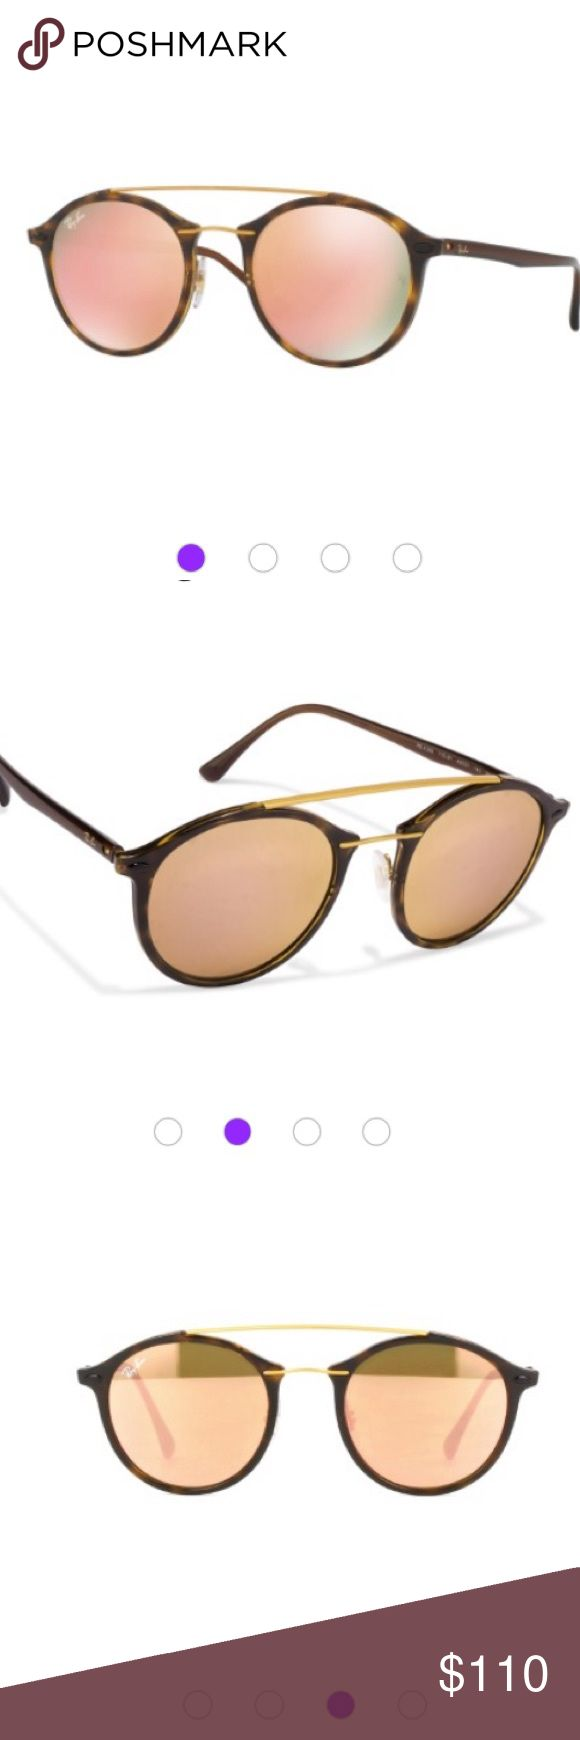 """Ray-ban shinny Havana/light brown mirror pink tech New! No trade no lowball. Ray-Ban 0RB4266 710/2Y 49 Shiny Havana/Light Brown Mirror Pink Tech sunglasses. Made in Italy. About this item Features Plastic frame Polycarbonate lens non-polarized Mirror coating Lens width: 49 millimeters Bridge: 21 millimeters Arm: 140 millimeters 2"""" high. Ray-Ban Accessories Sunglasses"""